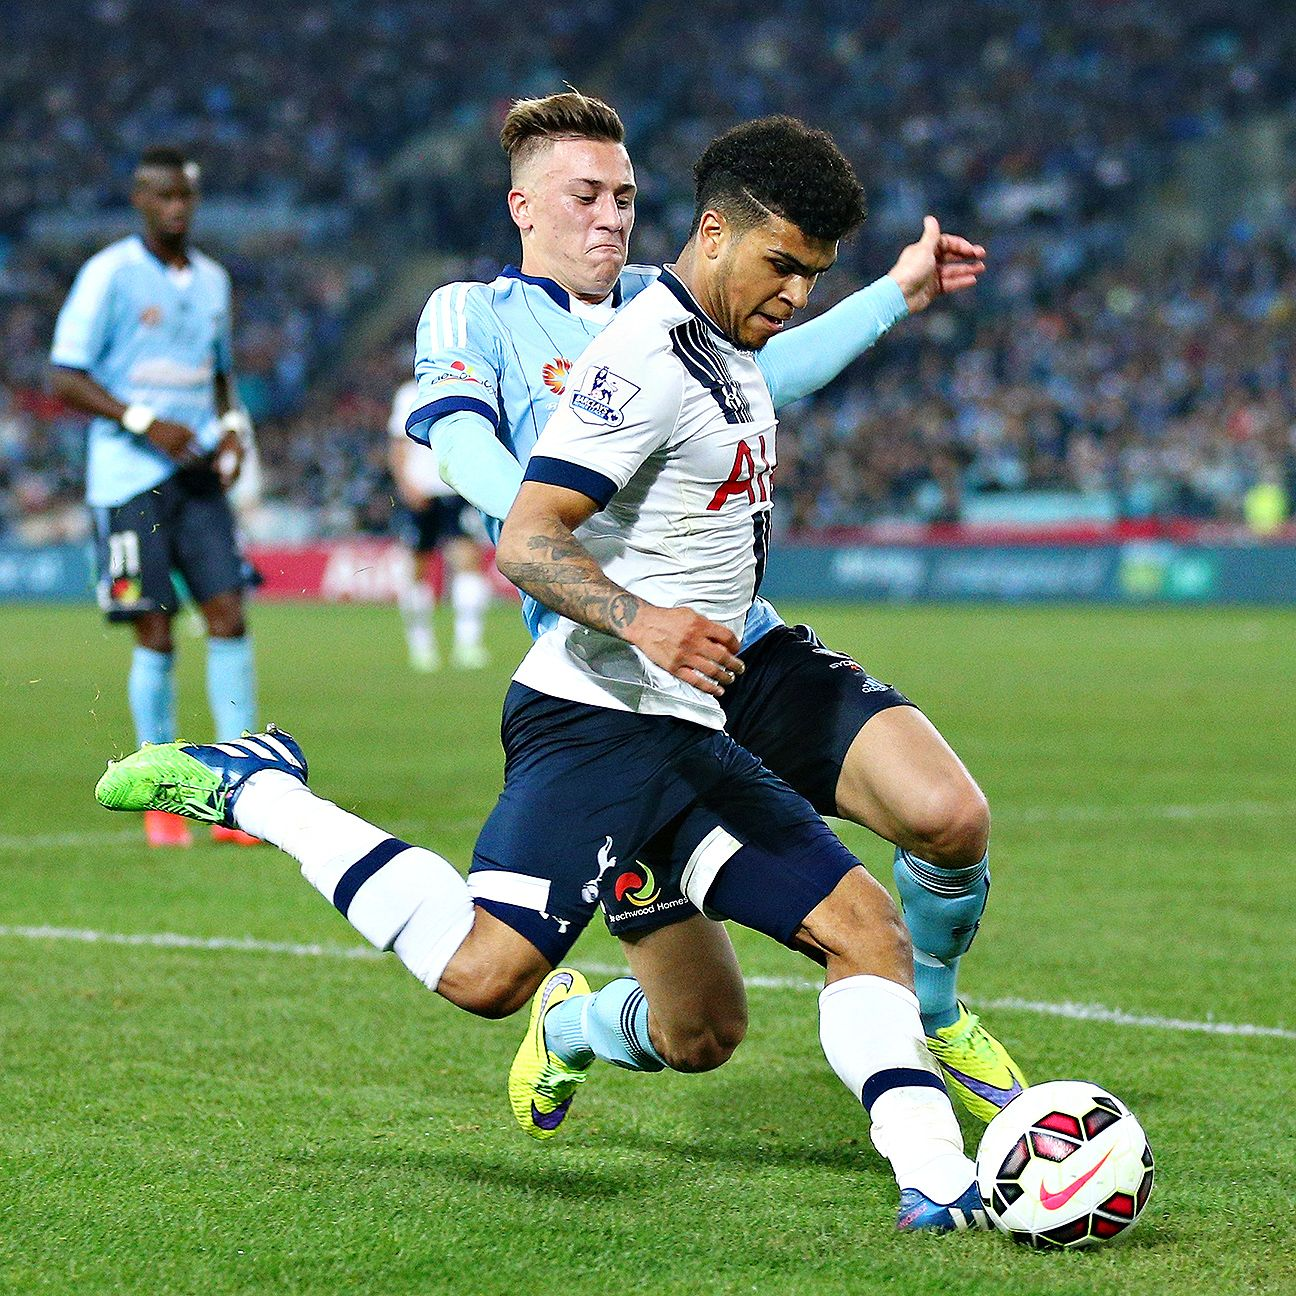 A loan from Tottenham seems in the cards for DeAndre Yedlin. But which league and club offer the best fit?